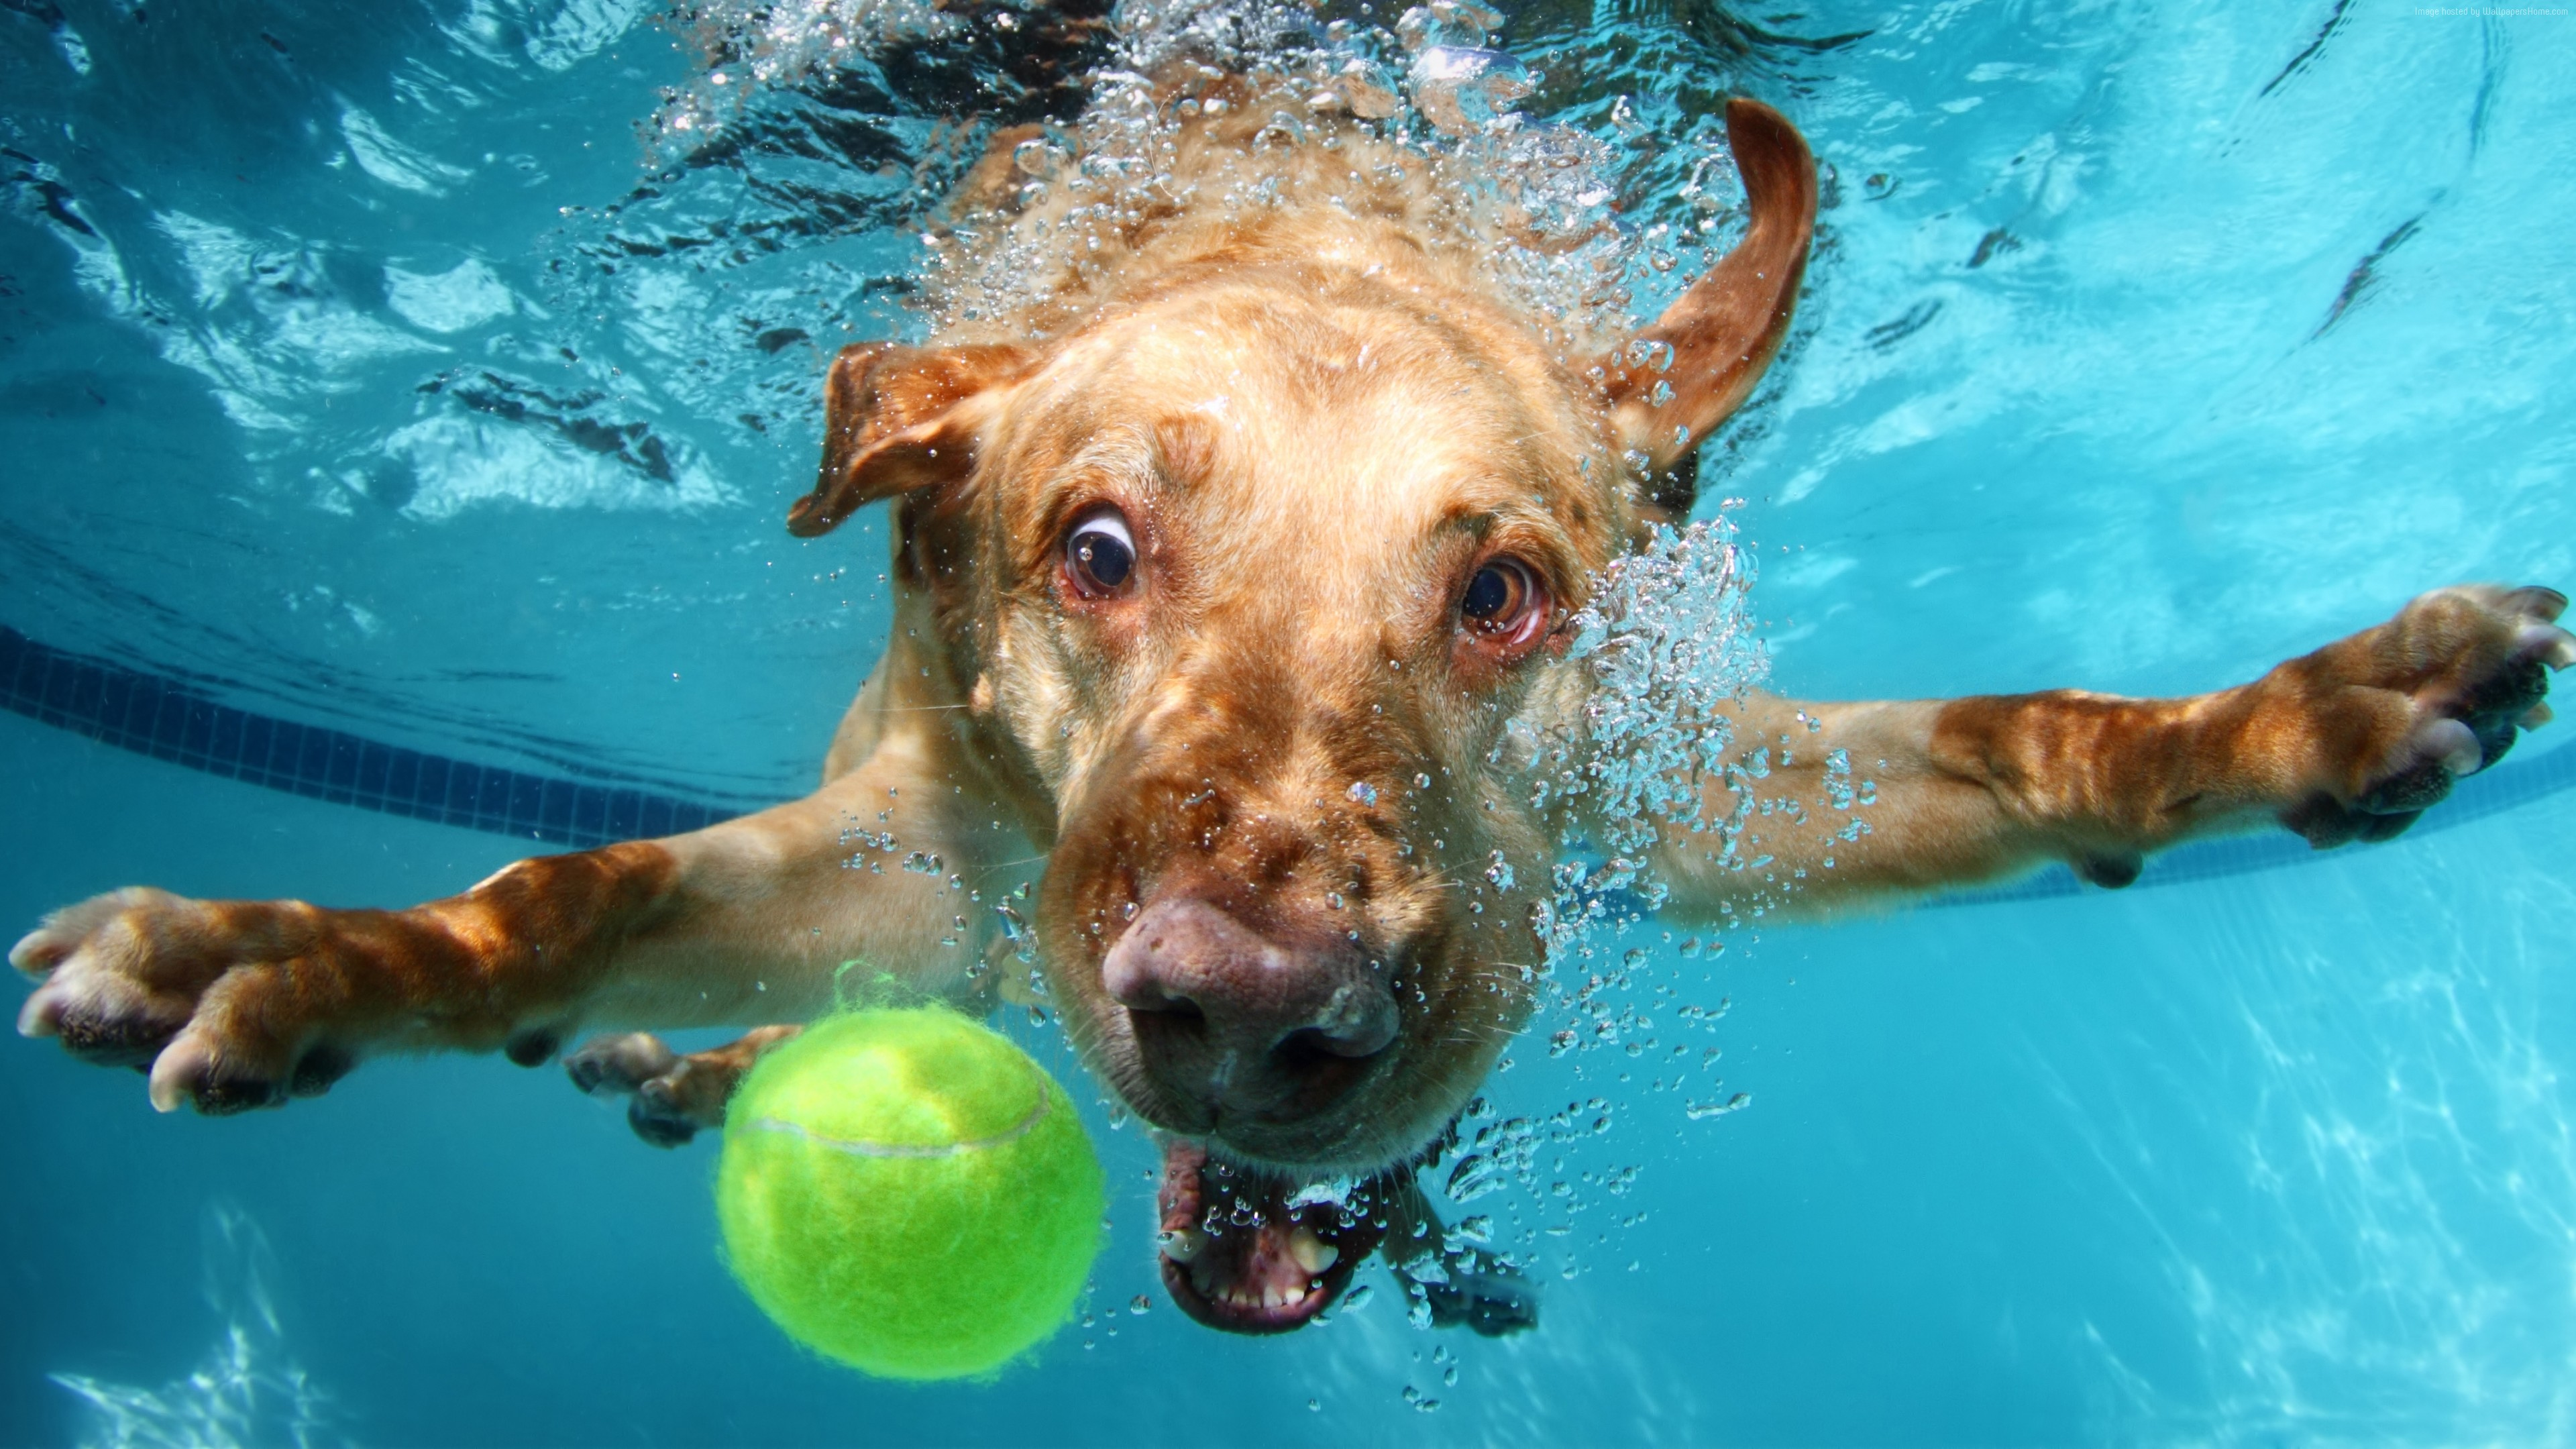 Wallpaper Labrador, dog, underwater, cute animals, funny, Animals